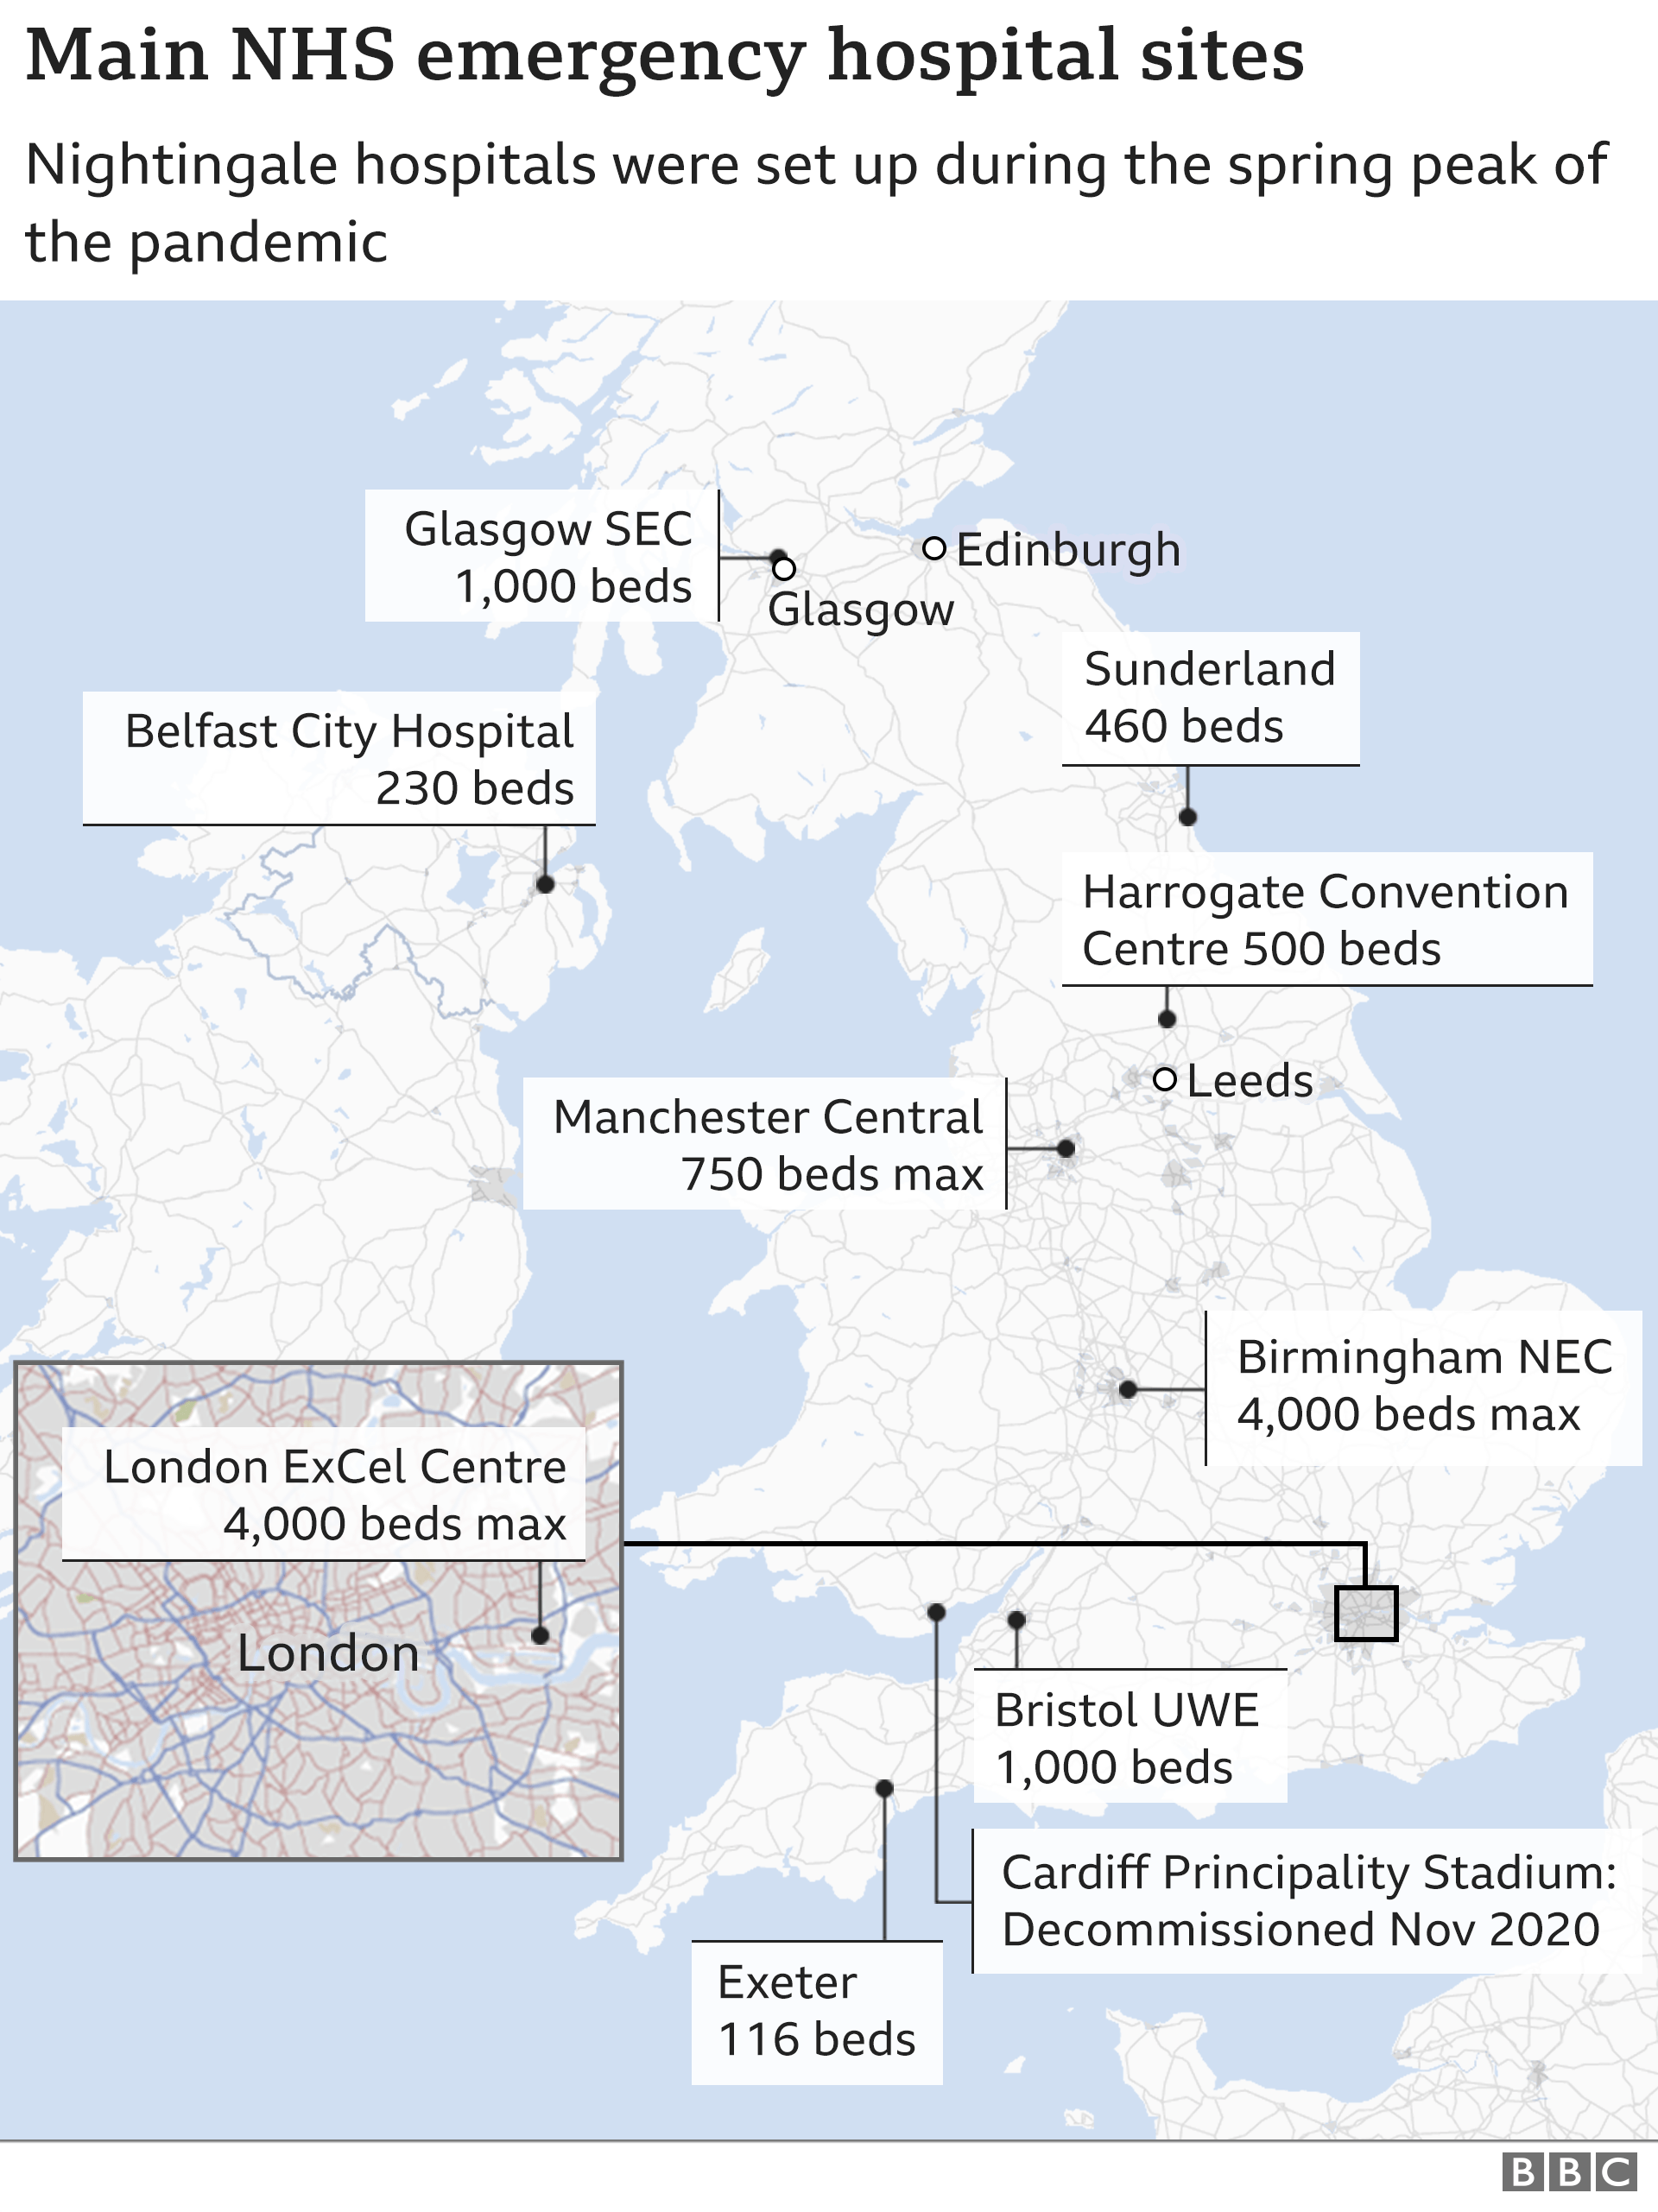 Map showing location of emergency hospitals around the UK